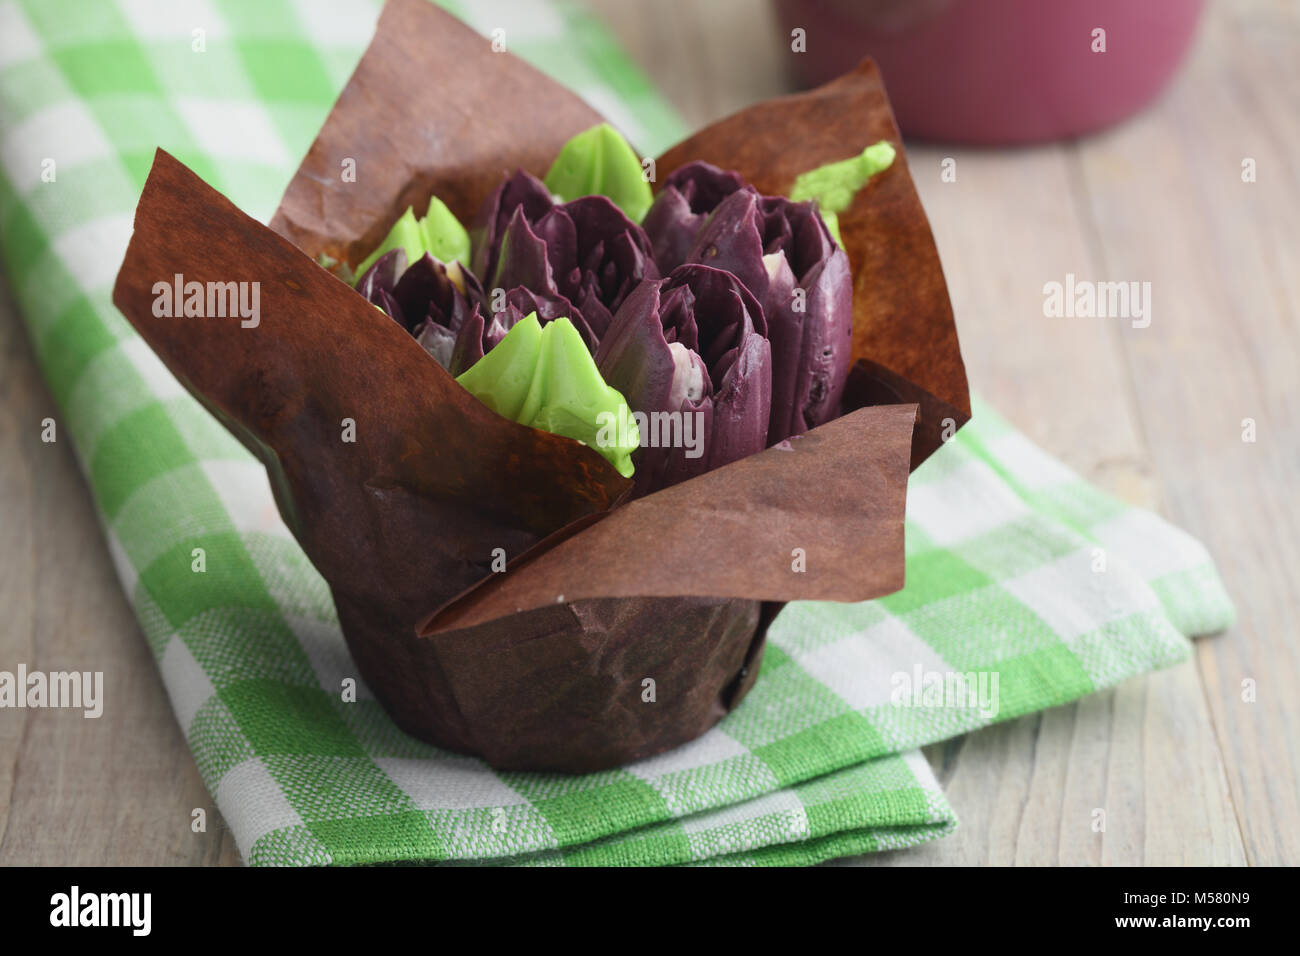 Easter cupcake in a baking paper topped with buttercream tulip flowers - Stock Image